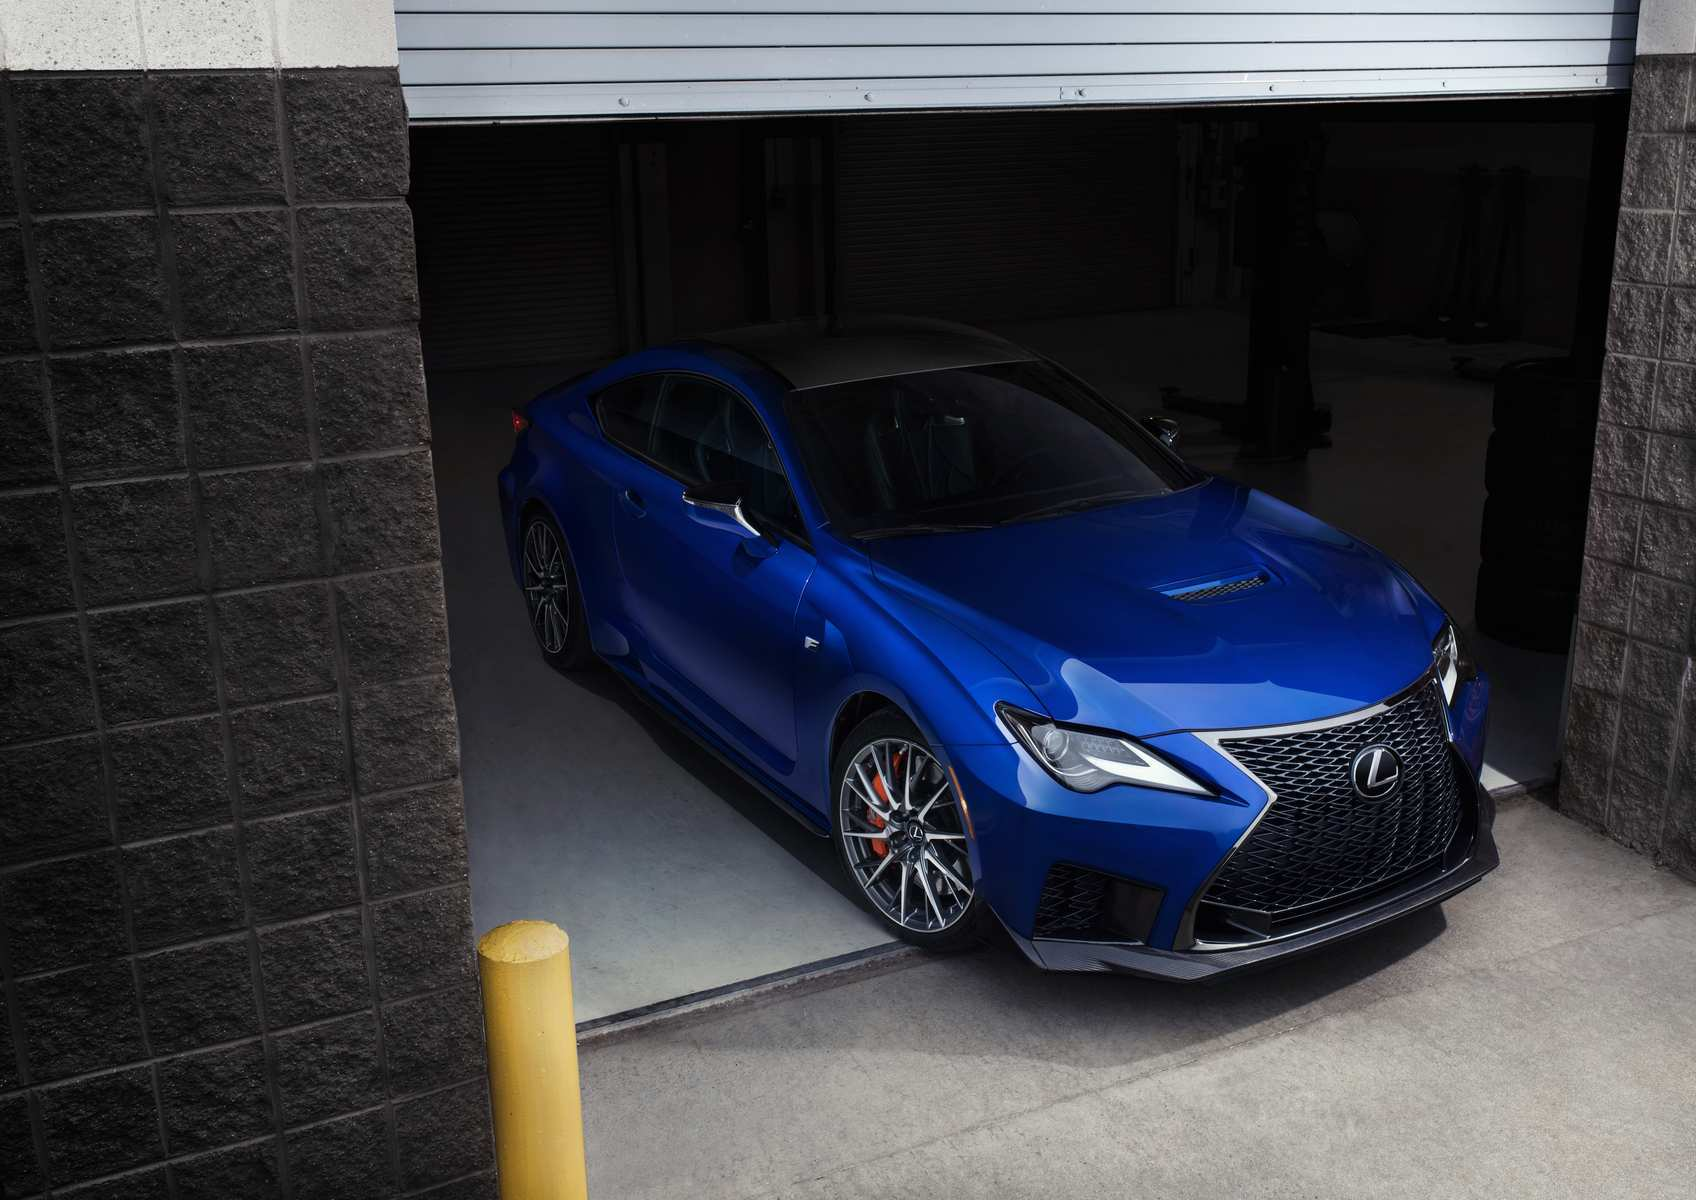 87 Great Lexus Rc F 2020 Price Specs and Review by Lexus Rc F 2020 Price